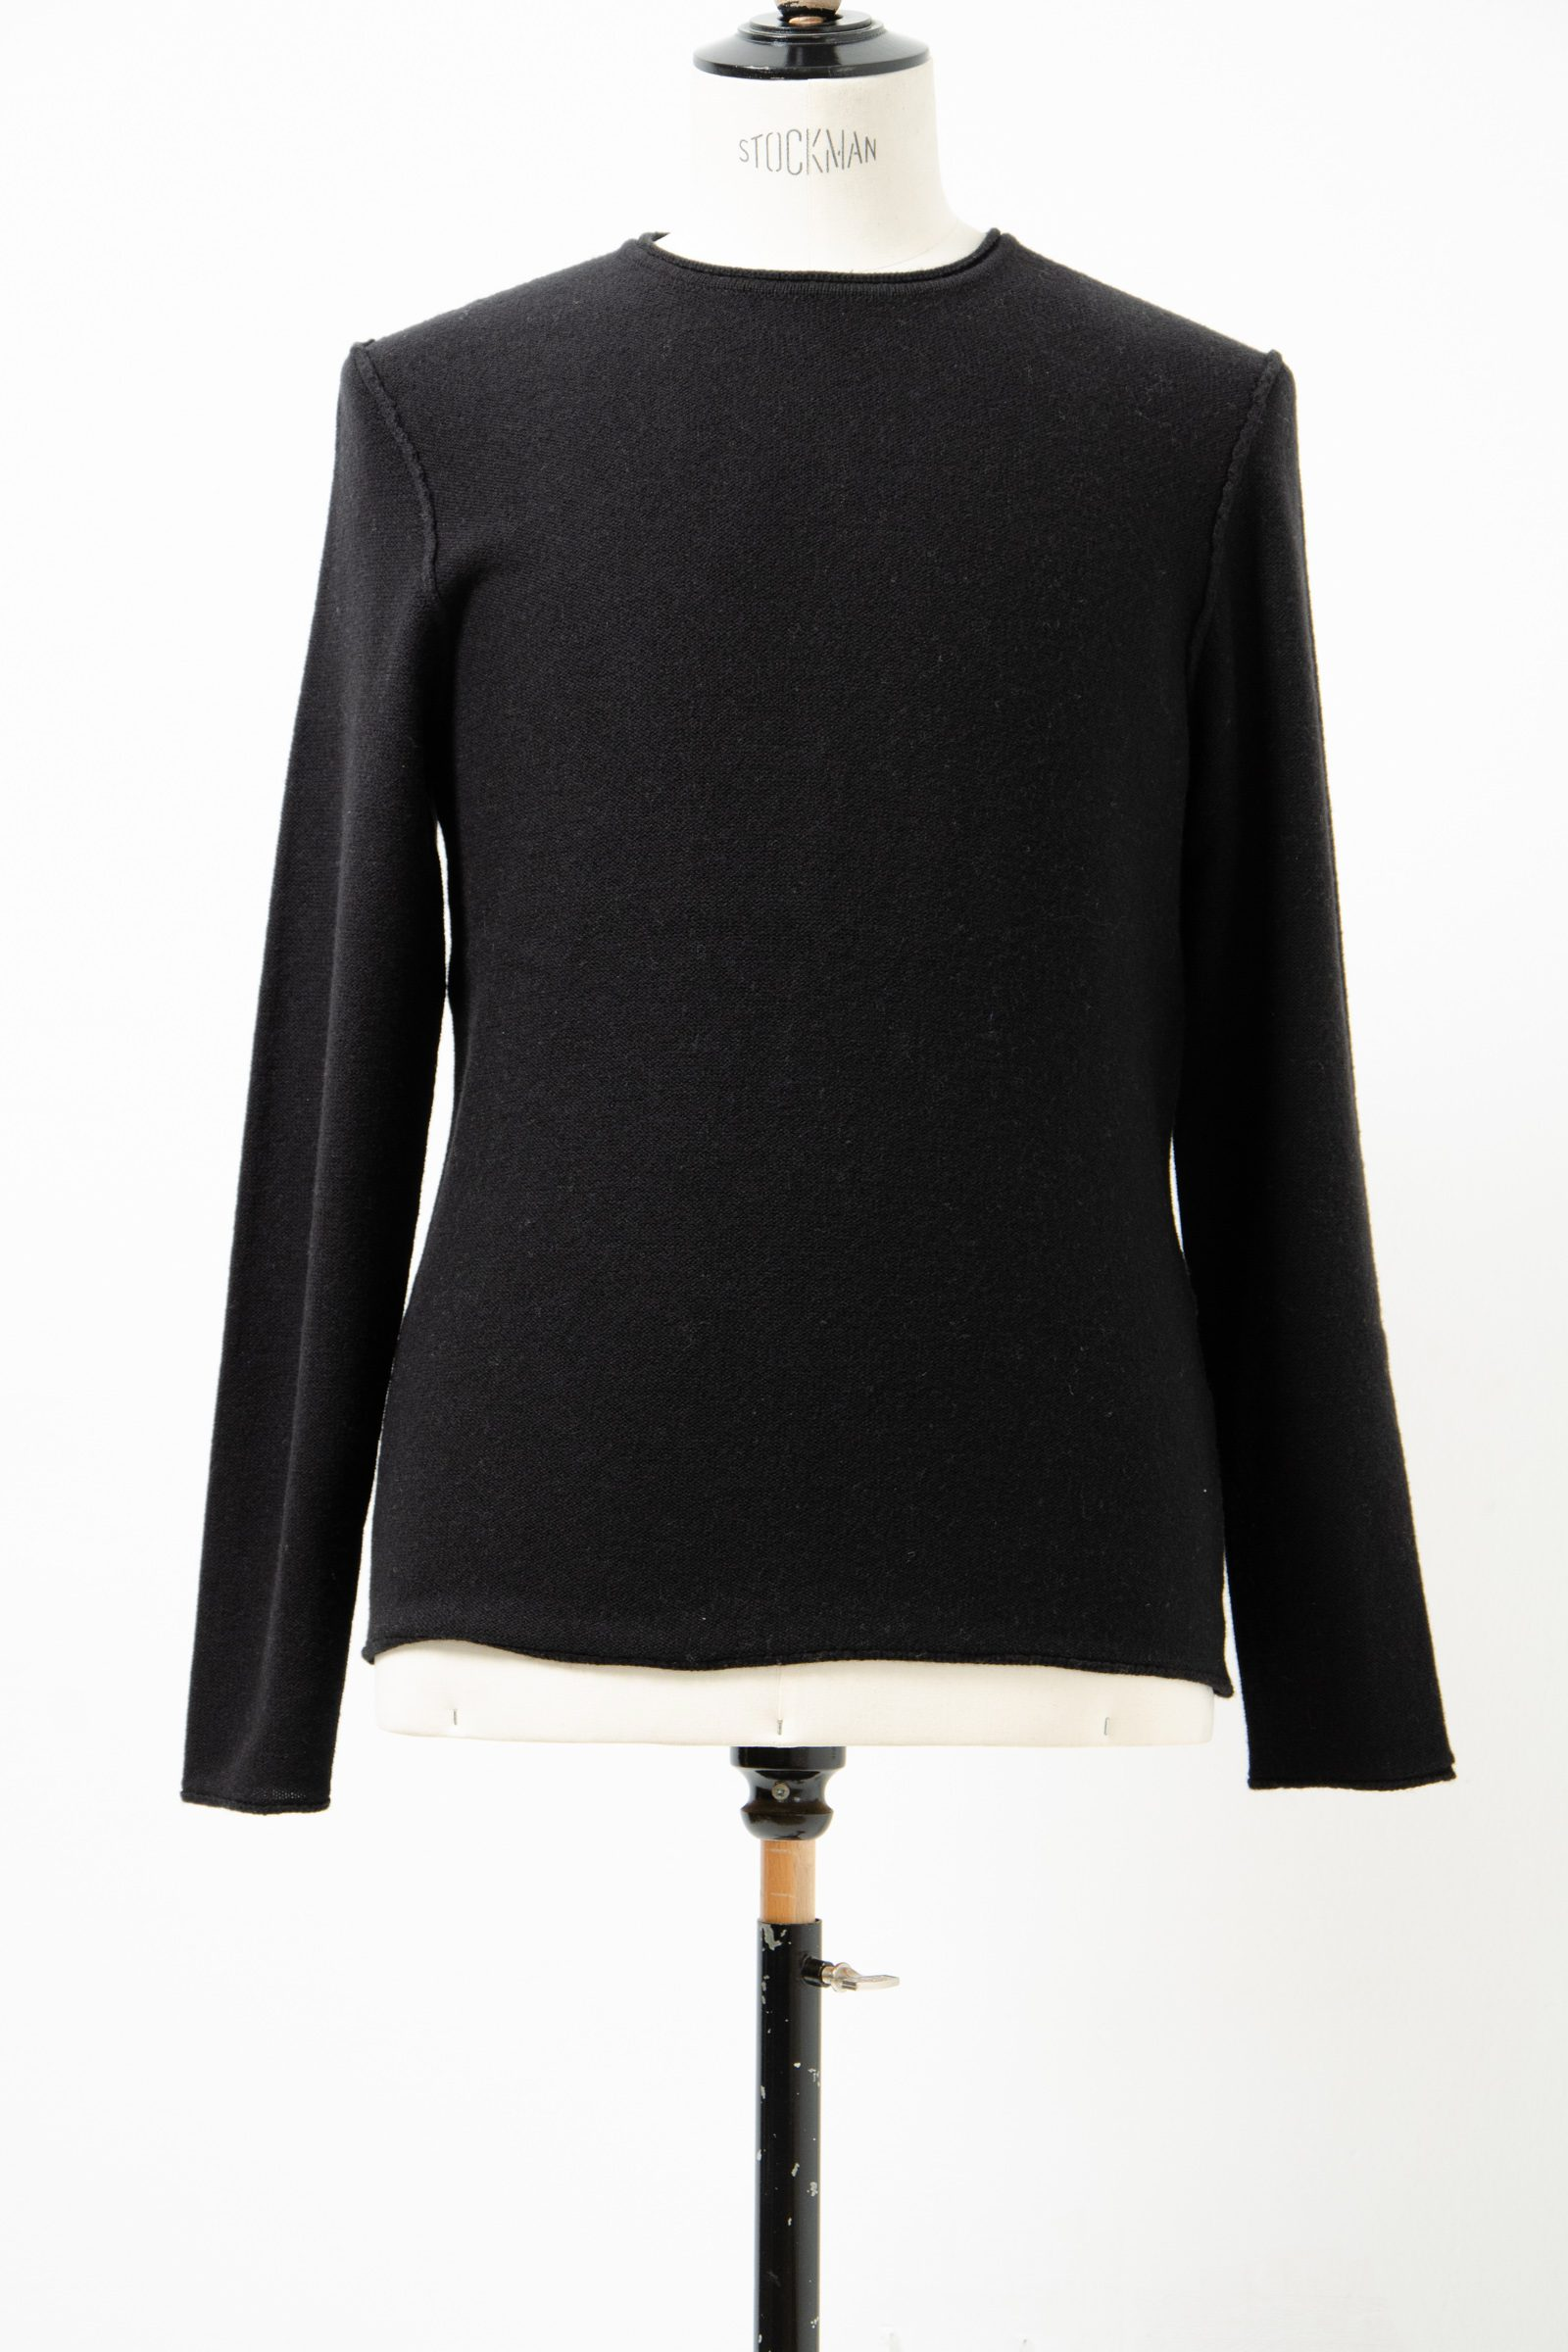 hannibal pullover nuriel 80 charcoal 6